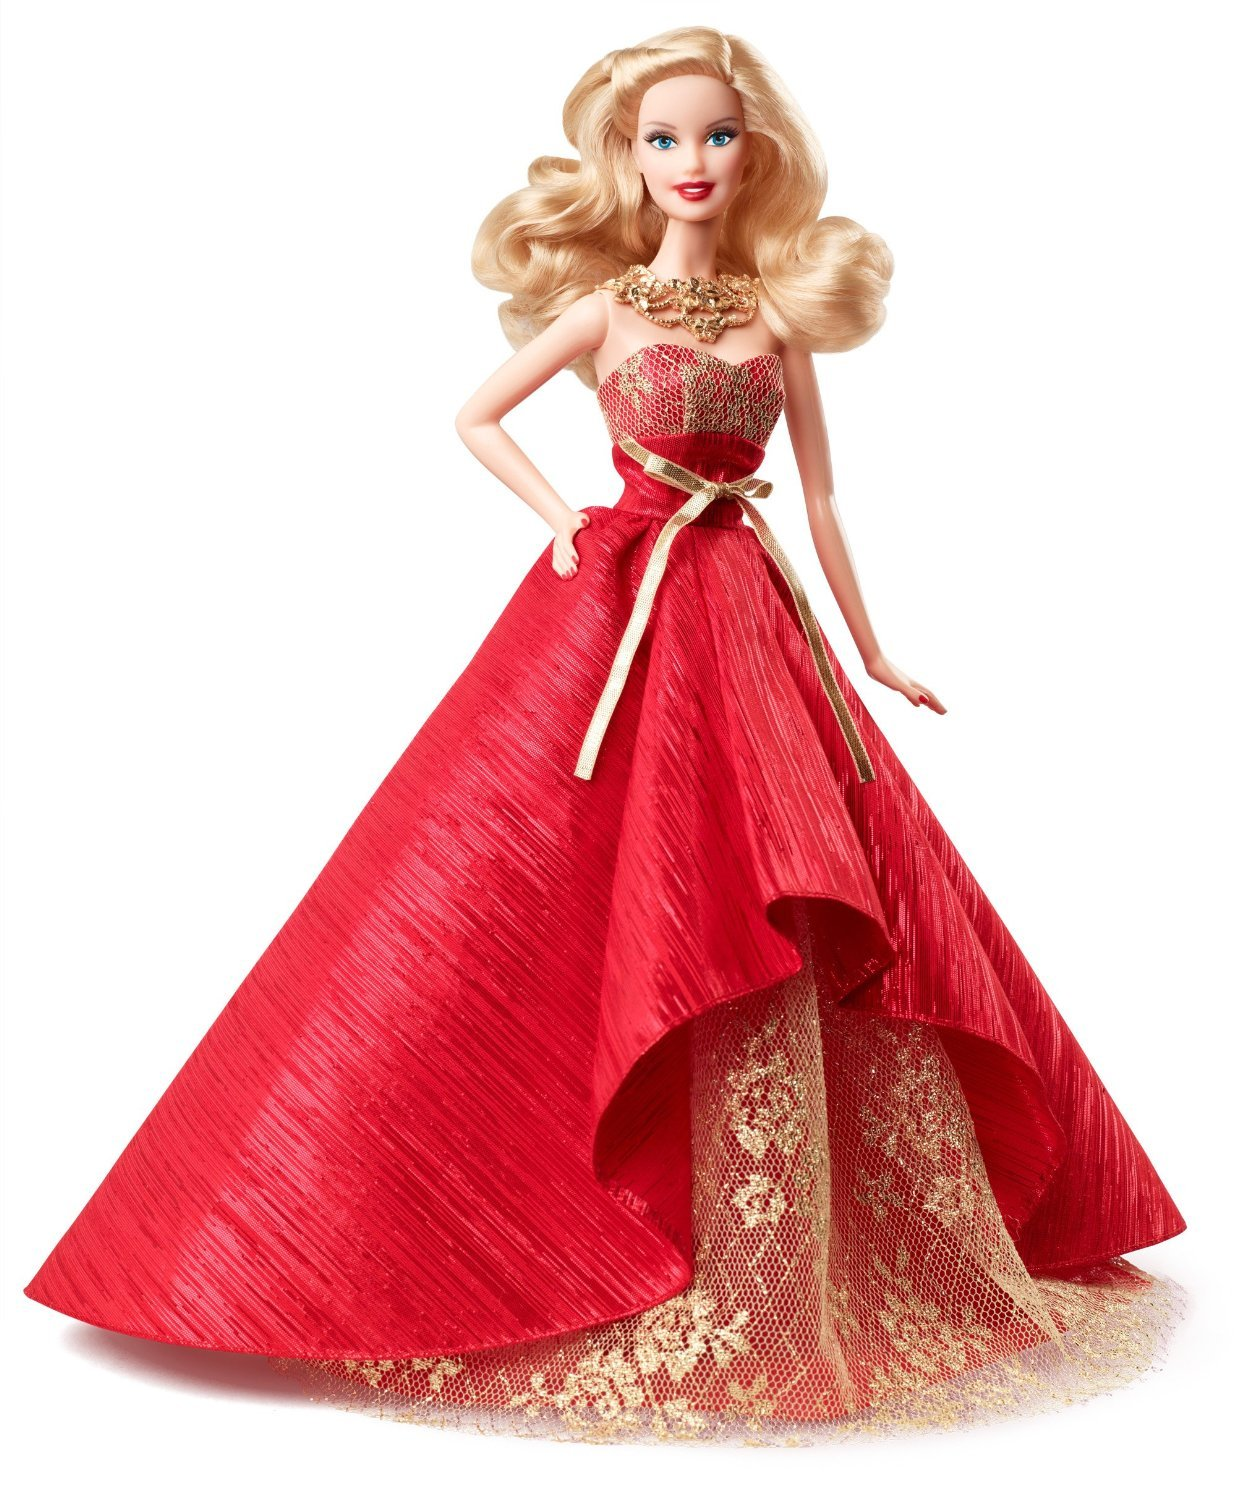 Image 0 of Holiday Barbie Doll 2014 in Posh Princess Red and Gold Satin Gown, Mattel